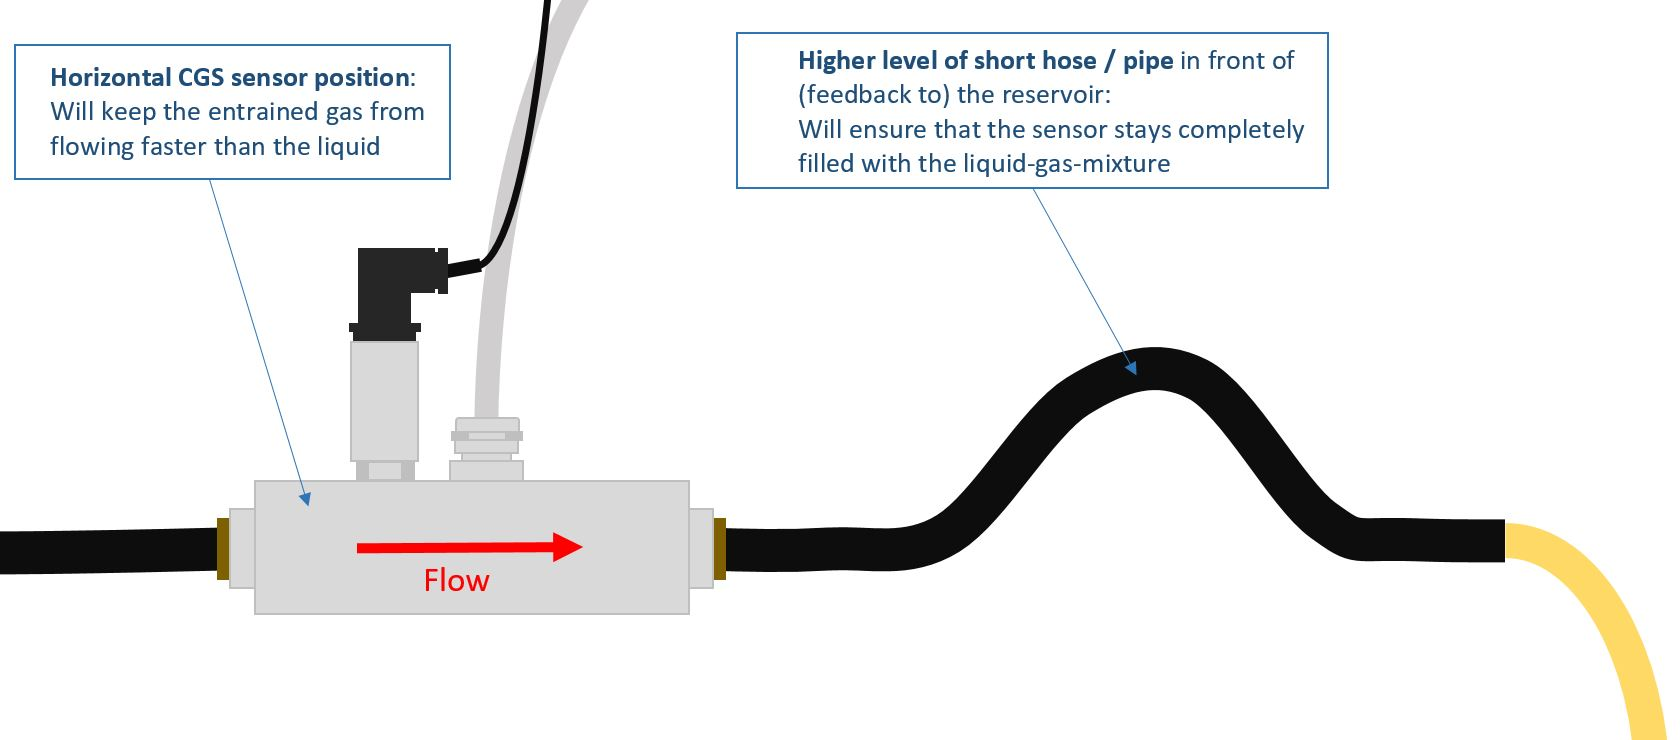 Using the large CGS sensor with low flow rates